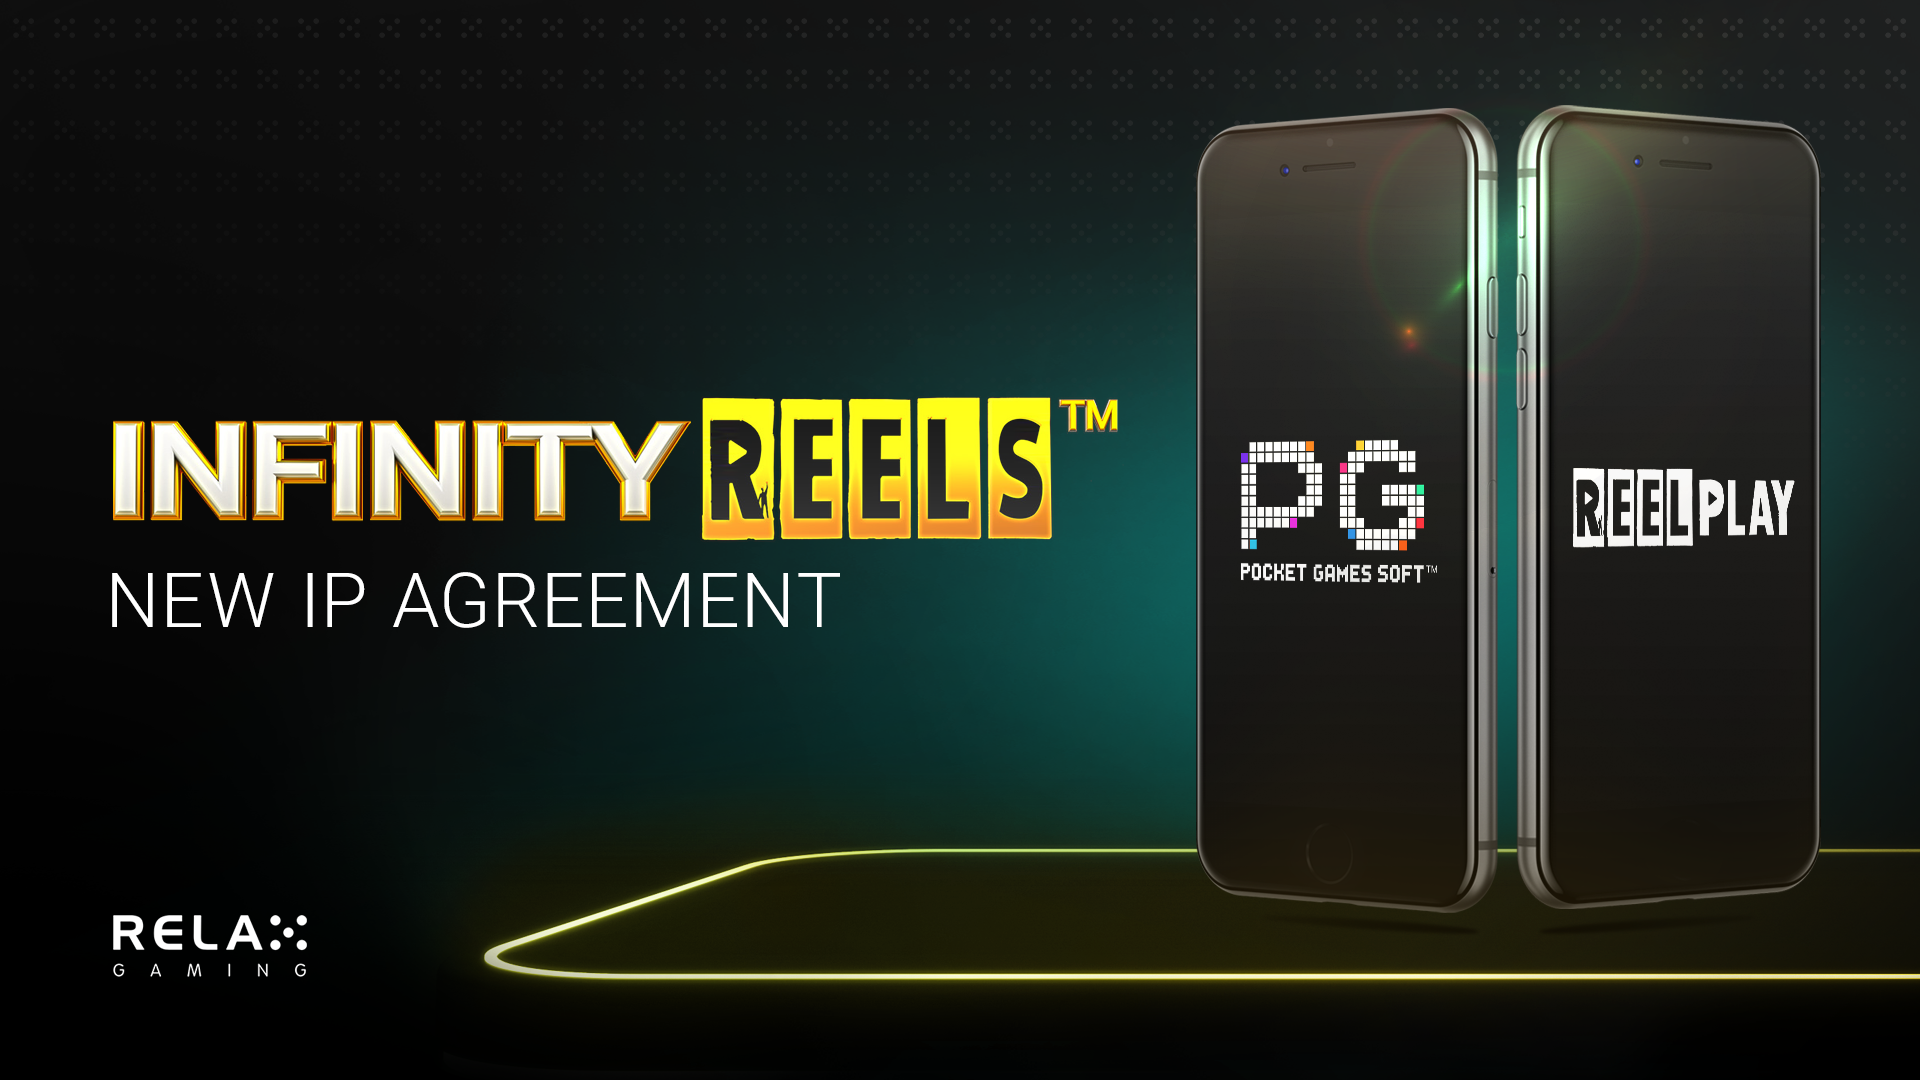 PG Soft acquires IP rights to Infinity Reels™